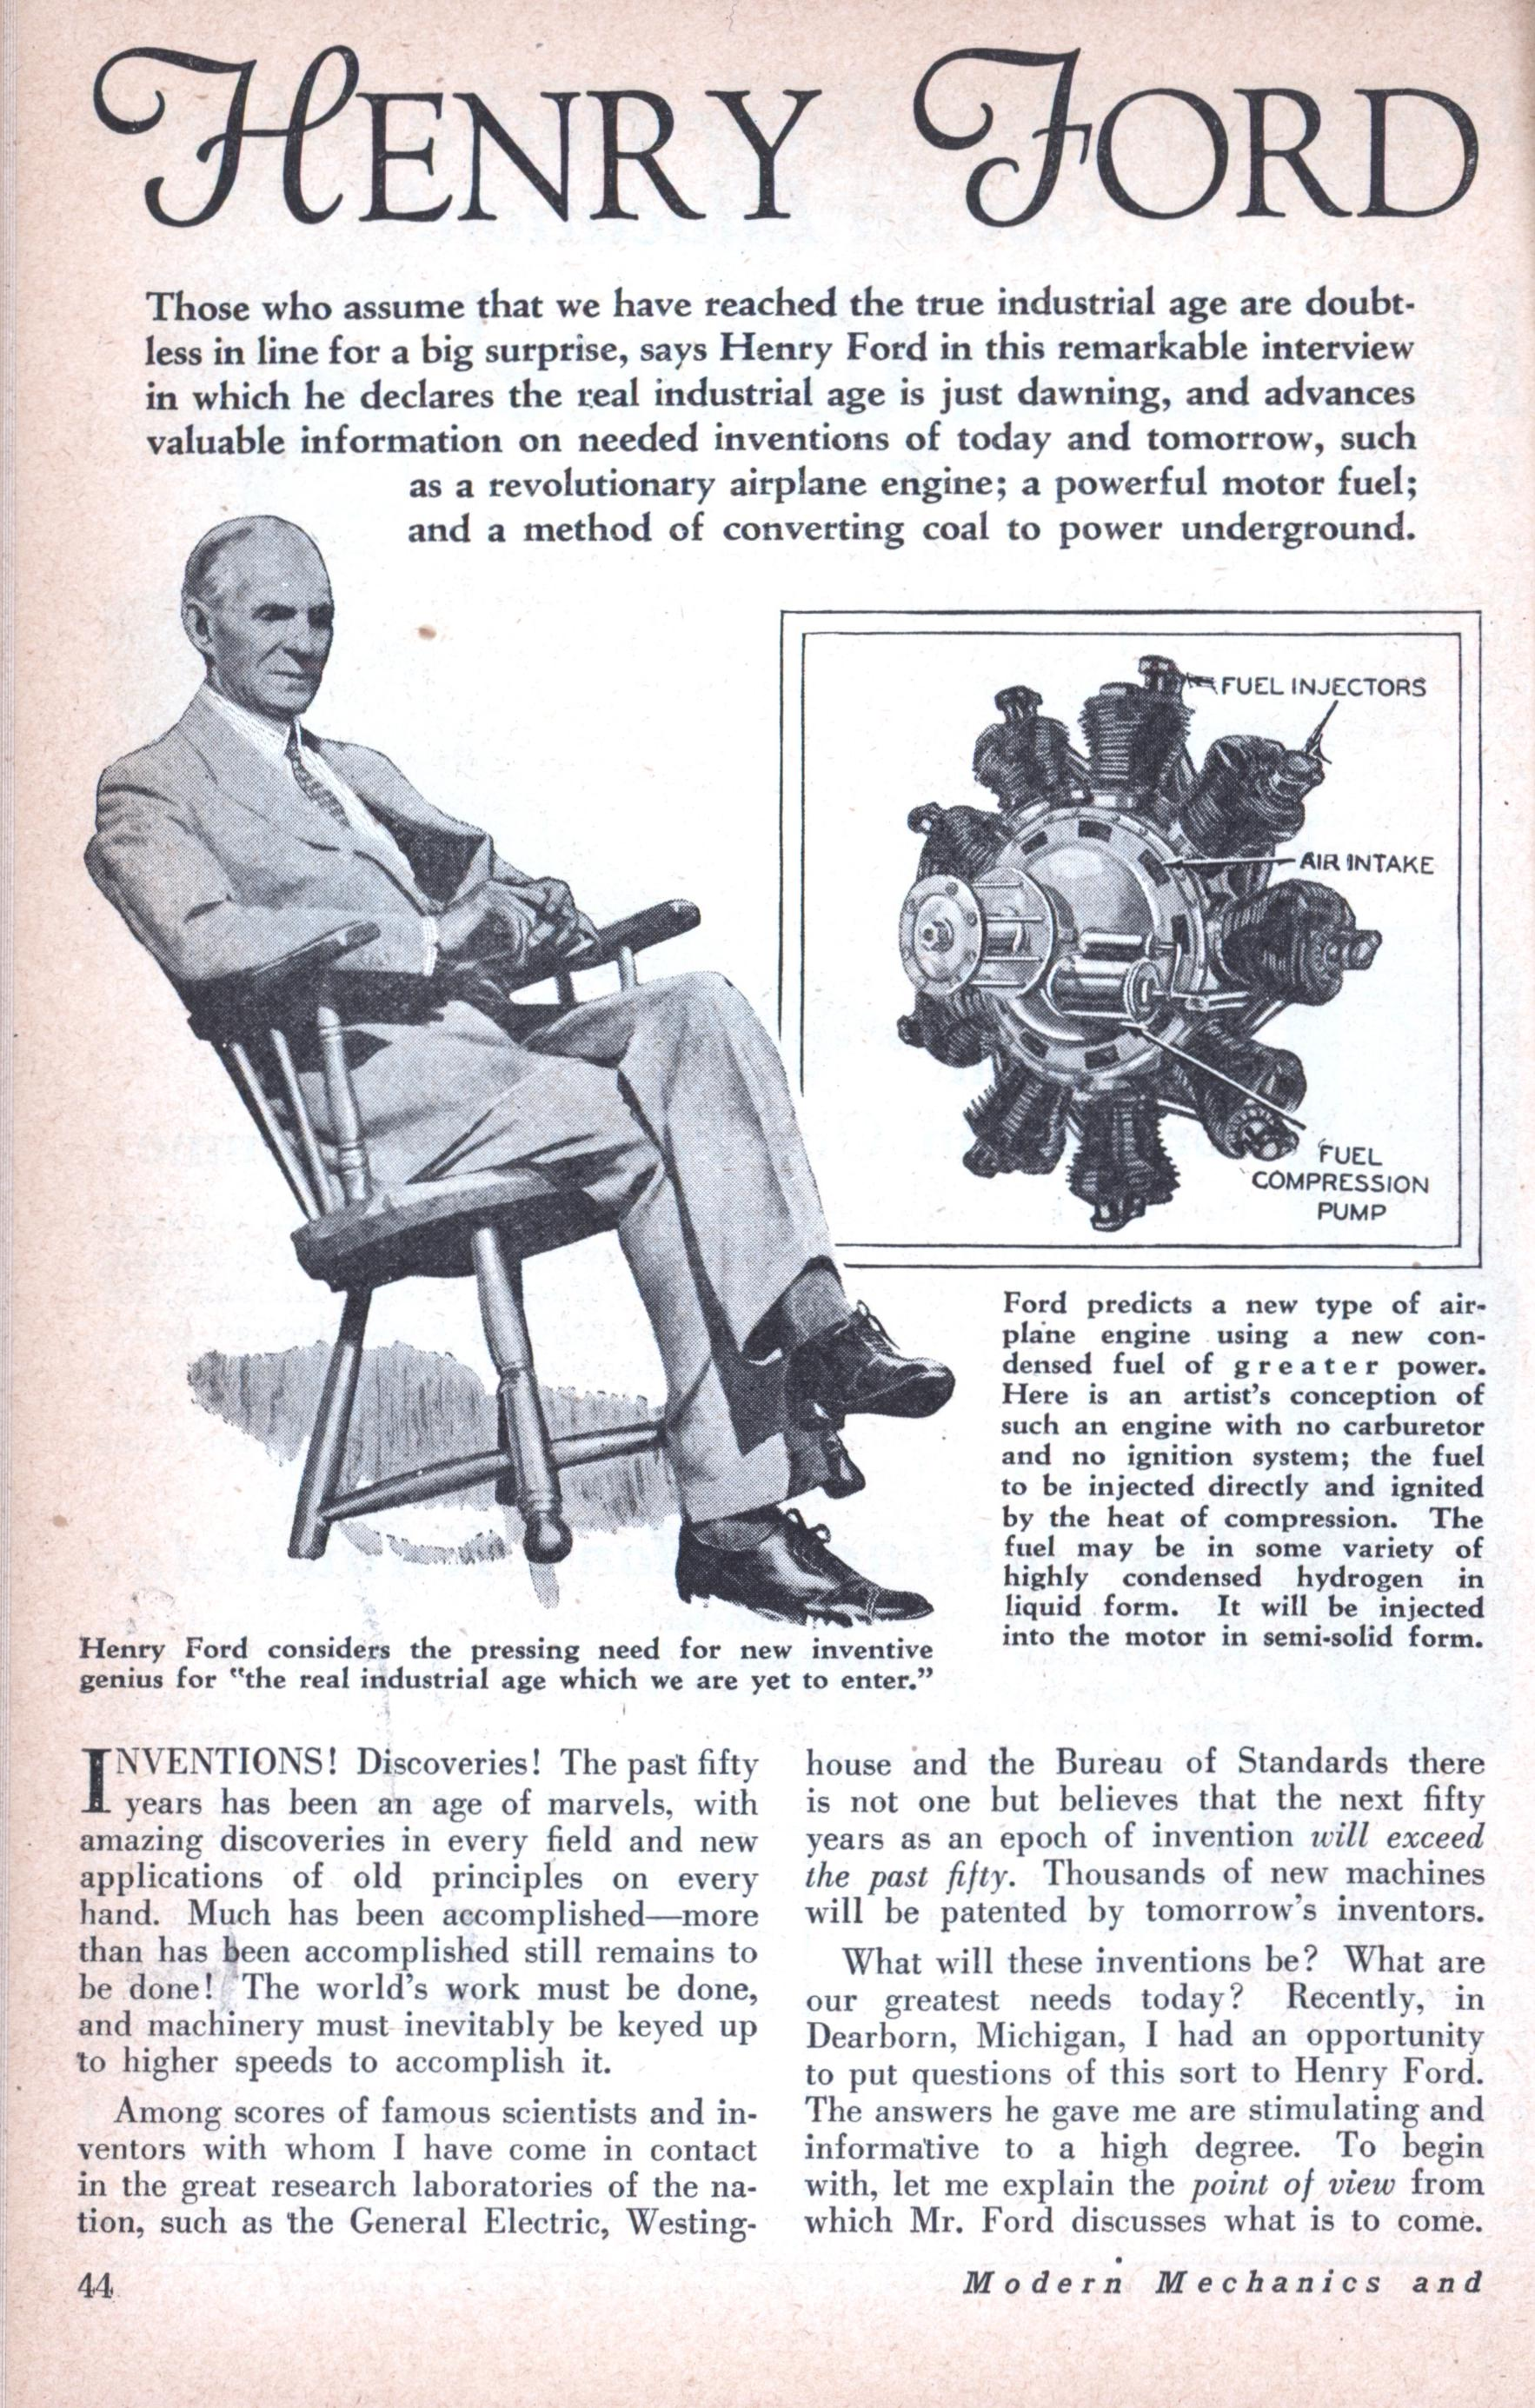 HENRY FORD TELLS WHAT To INVENT ~ Modern Mechanix What To Invent  Henry Ford Tells What To Invent